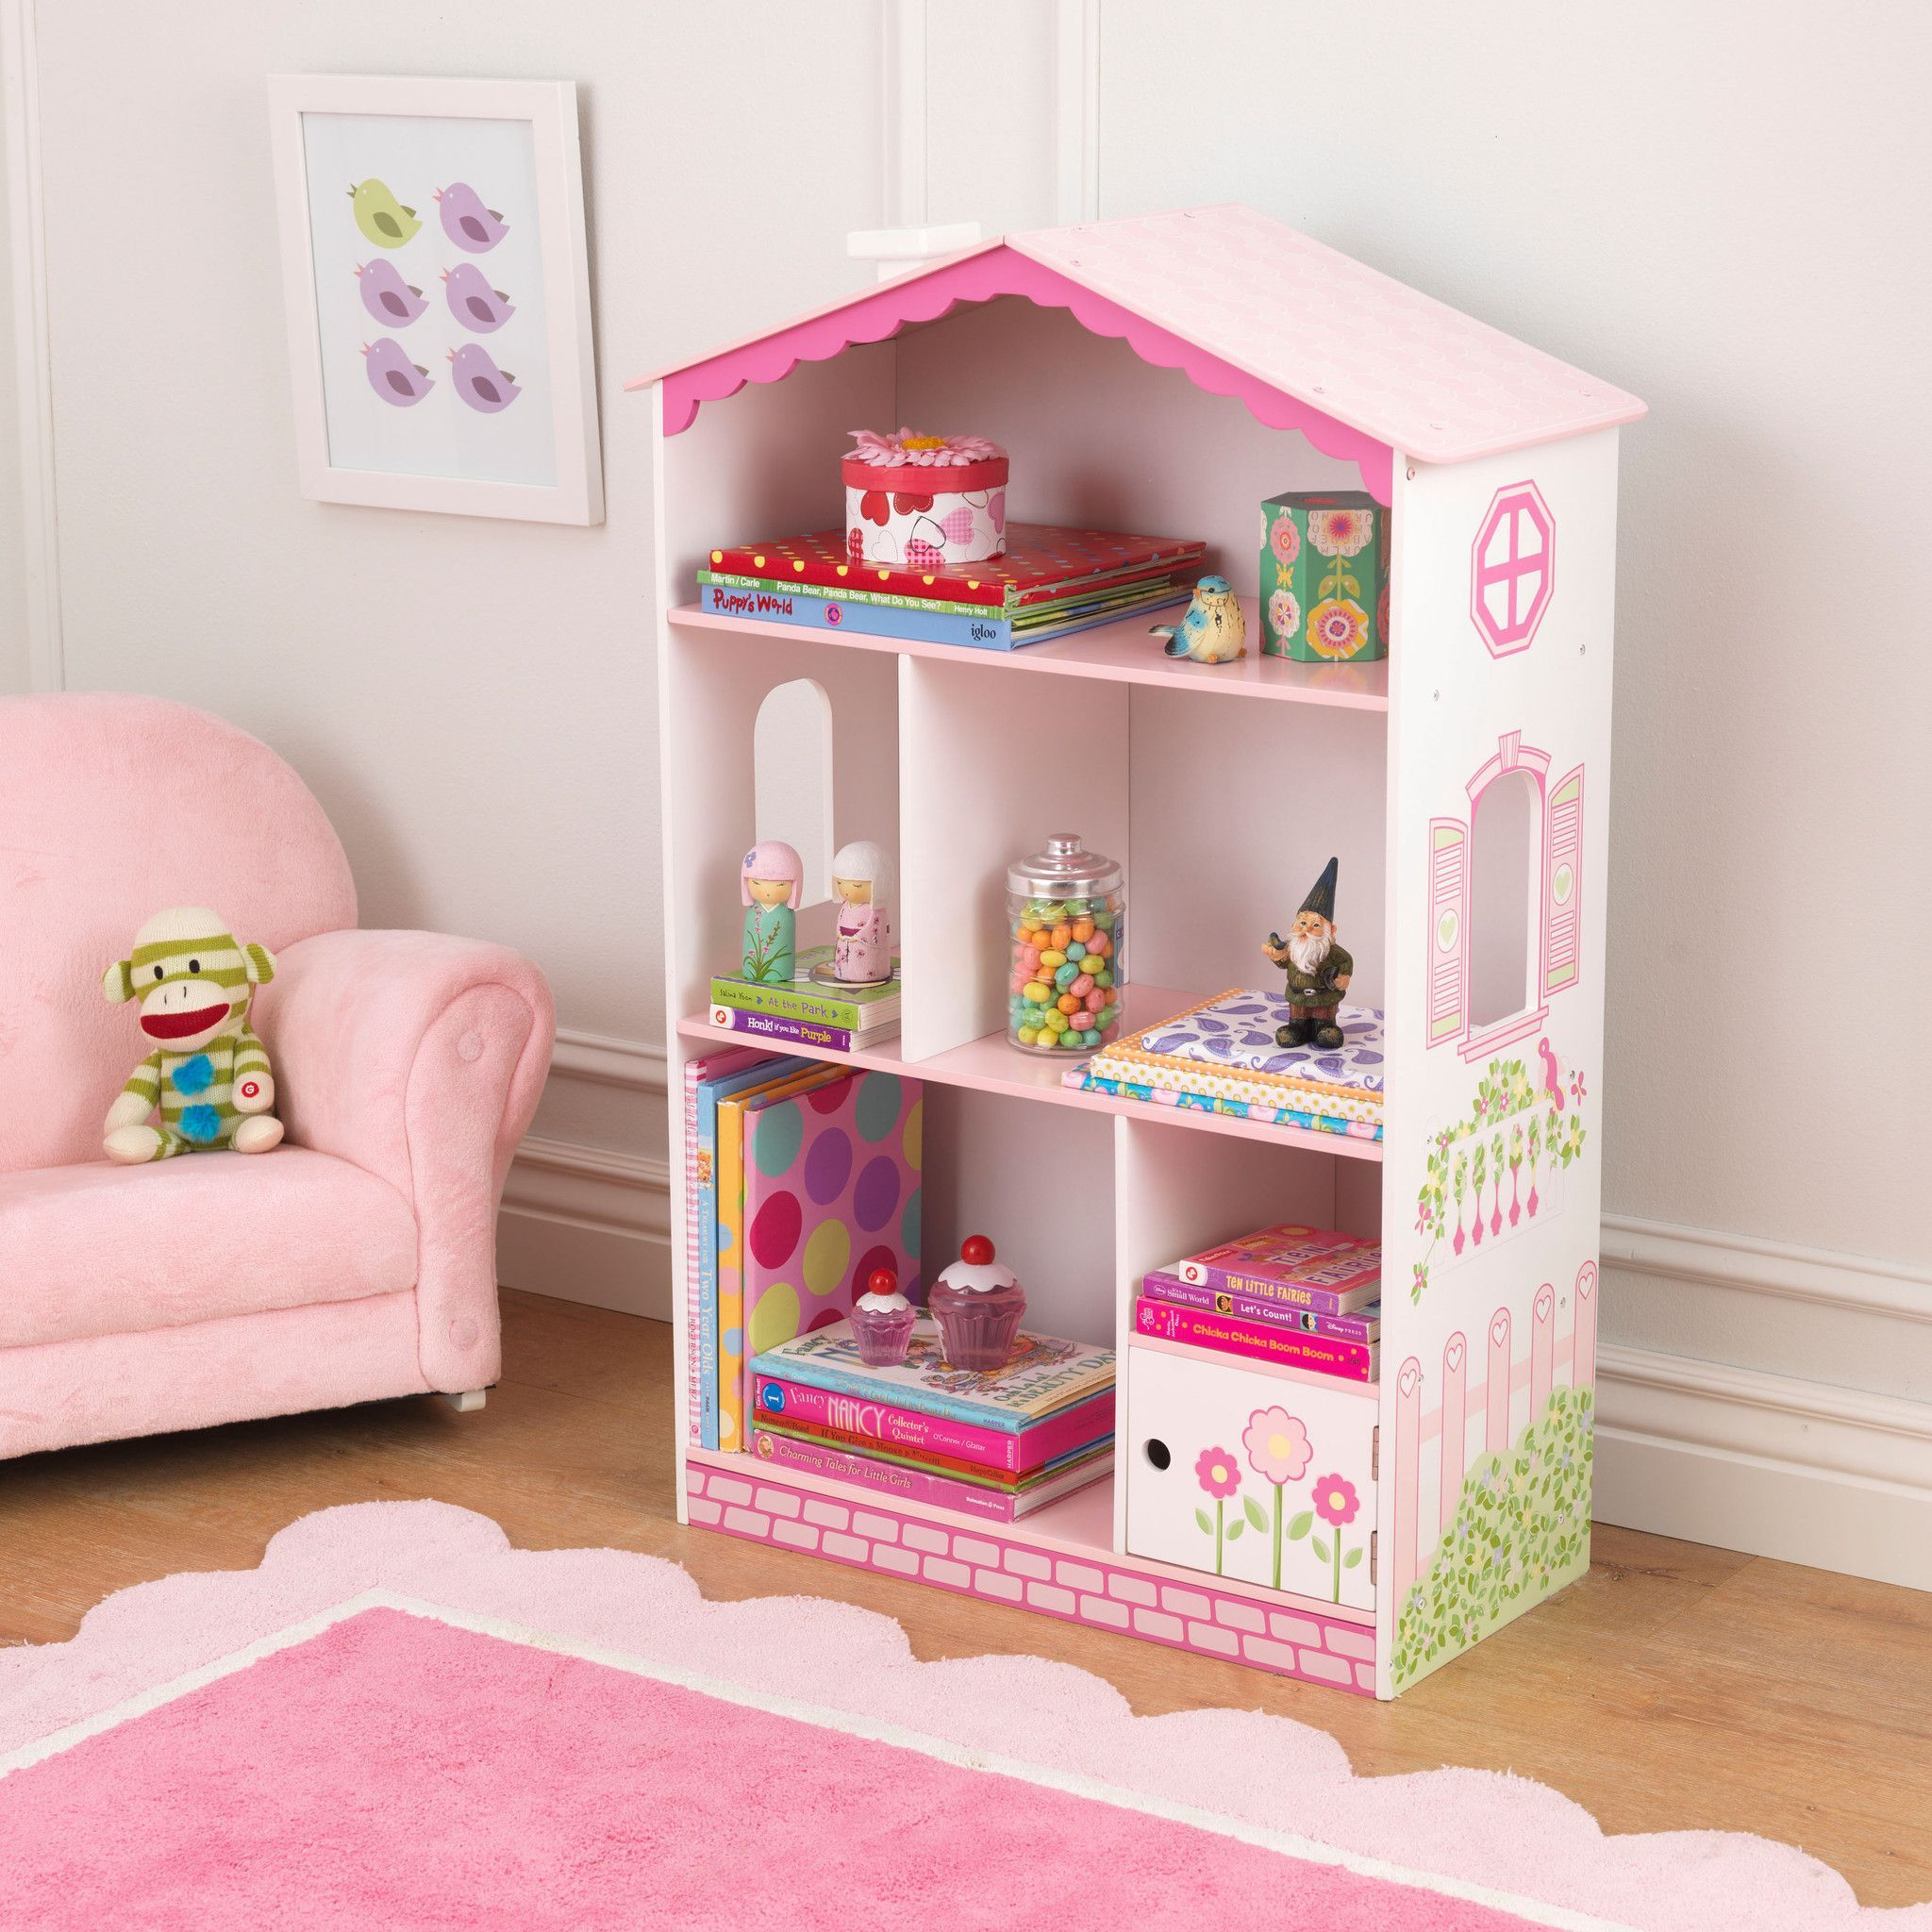 s room tidy dark charm dollhouse big tikes books girls superb wonderful mesmerize hot size desk paris small elegant bookcase dazzling girl uncategorized unforeseen corner phoebe full breathtaking lovable white of pink phenomenal bookshelf curious and little bookshelves amazon under